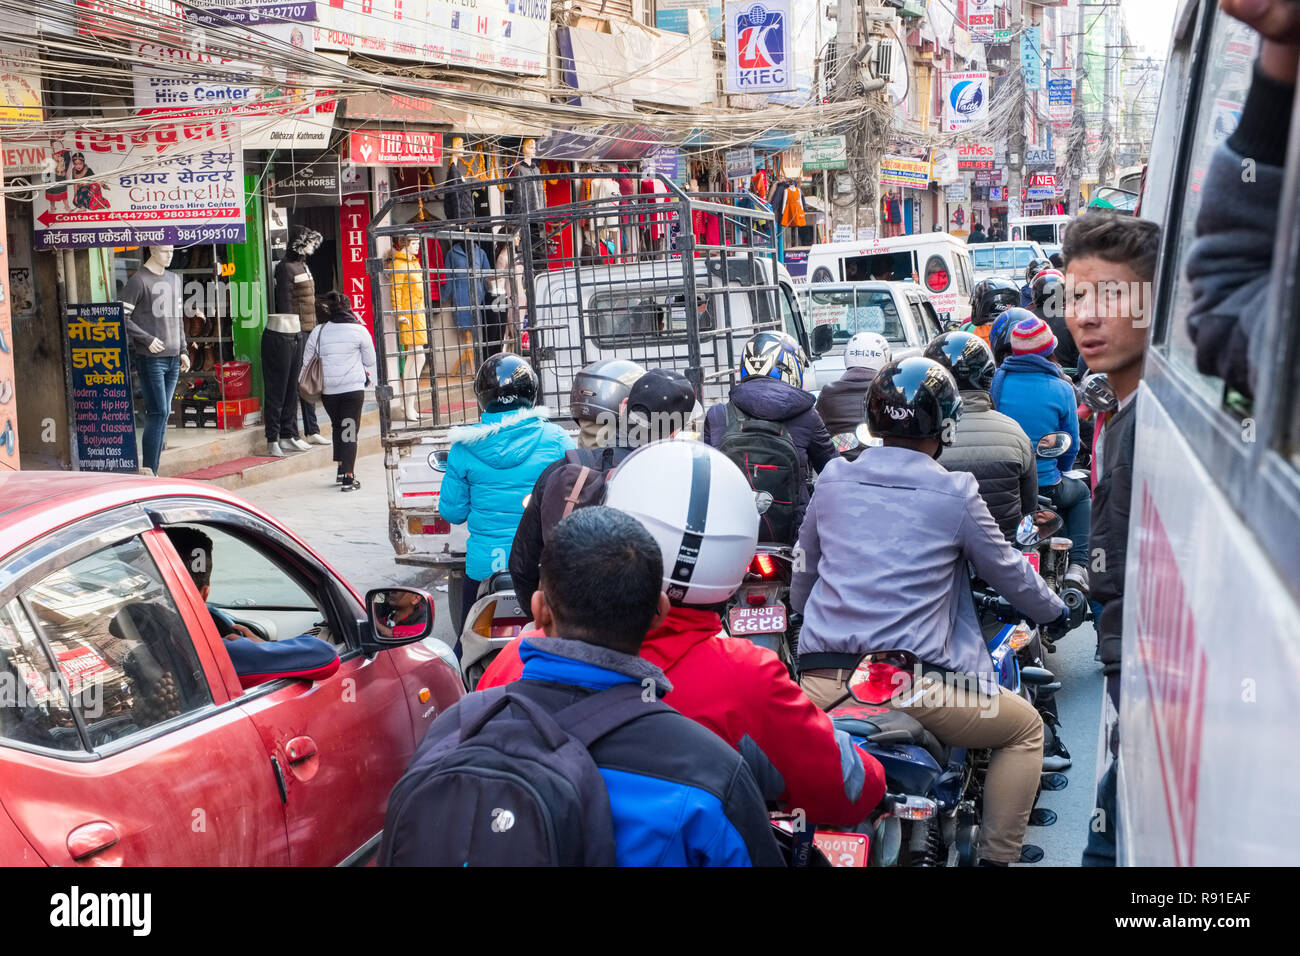 Traffic Congestion Stock Photos & Traffic Congestion Stock Images